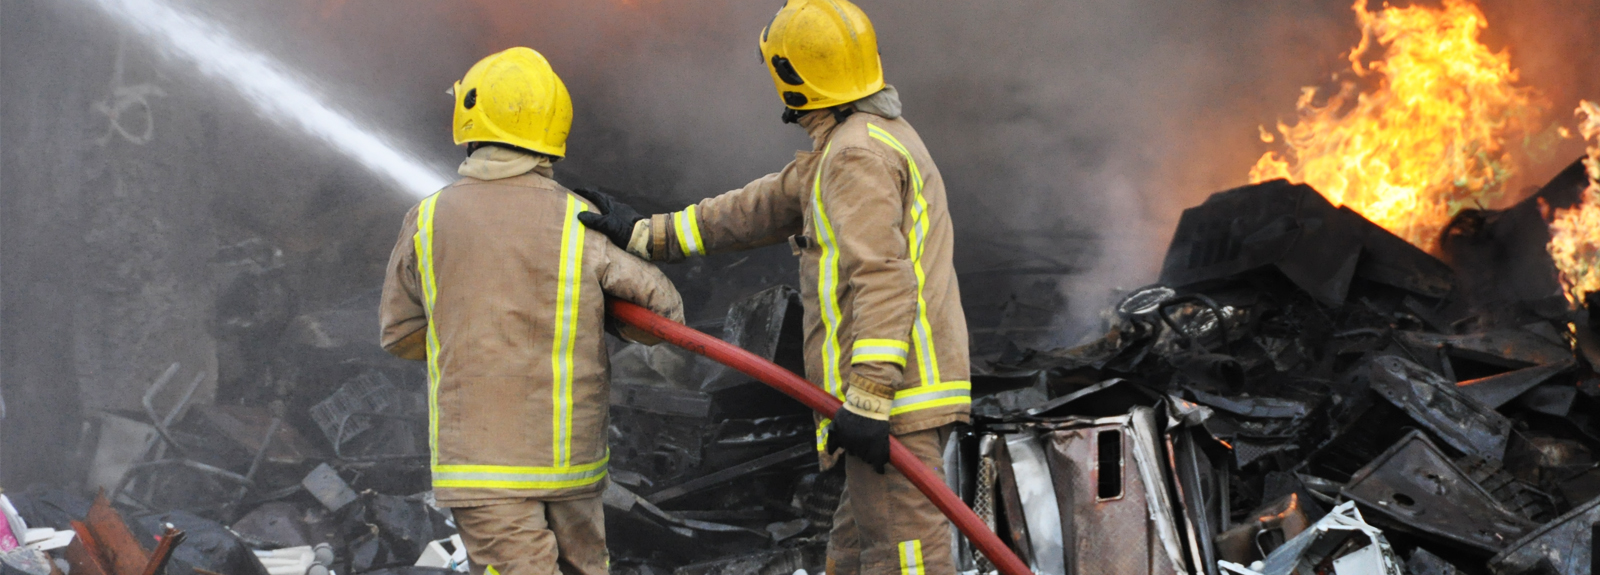 Help us protect communities from fires involving rubbish